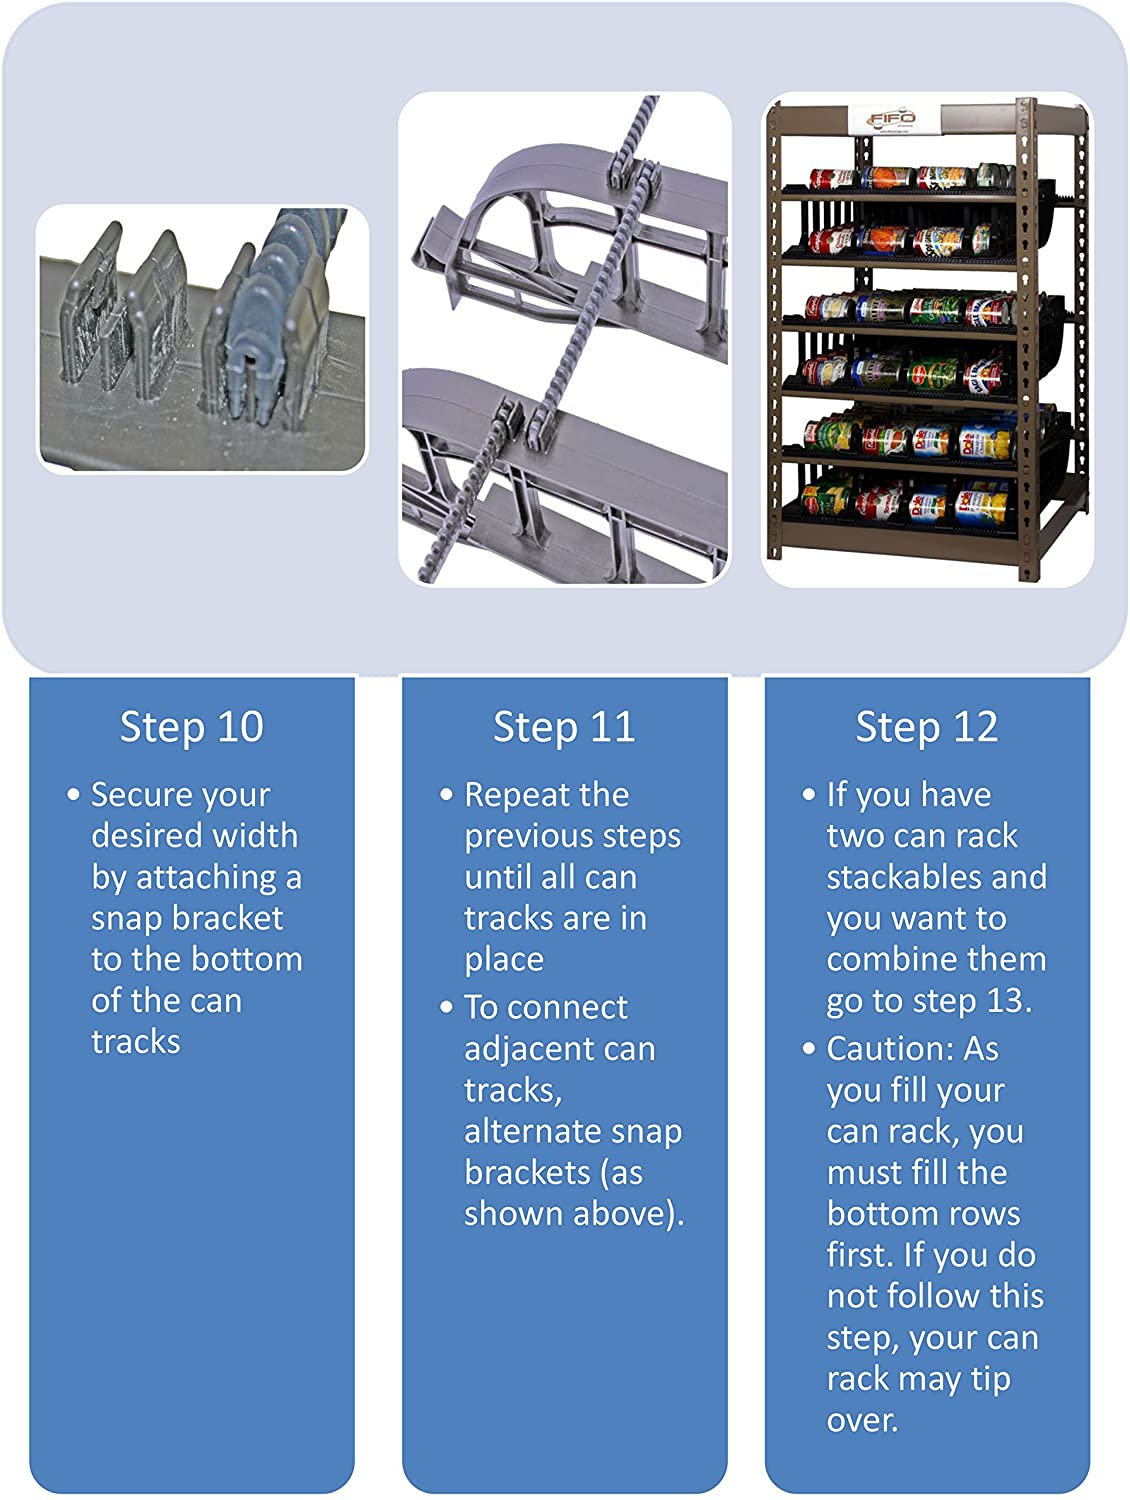 Amazon.com: Can Rack 200 by FIFO | Stores 200 Cans | Eliminates Waste | Organize, Rotate and Dispense Canned Goods First In First Out | Adjustable Tracks ...